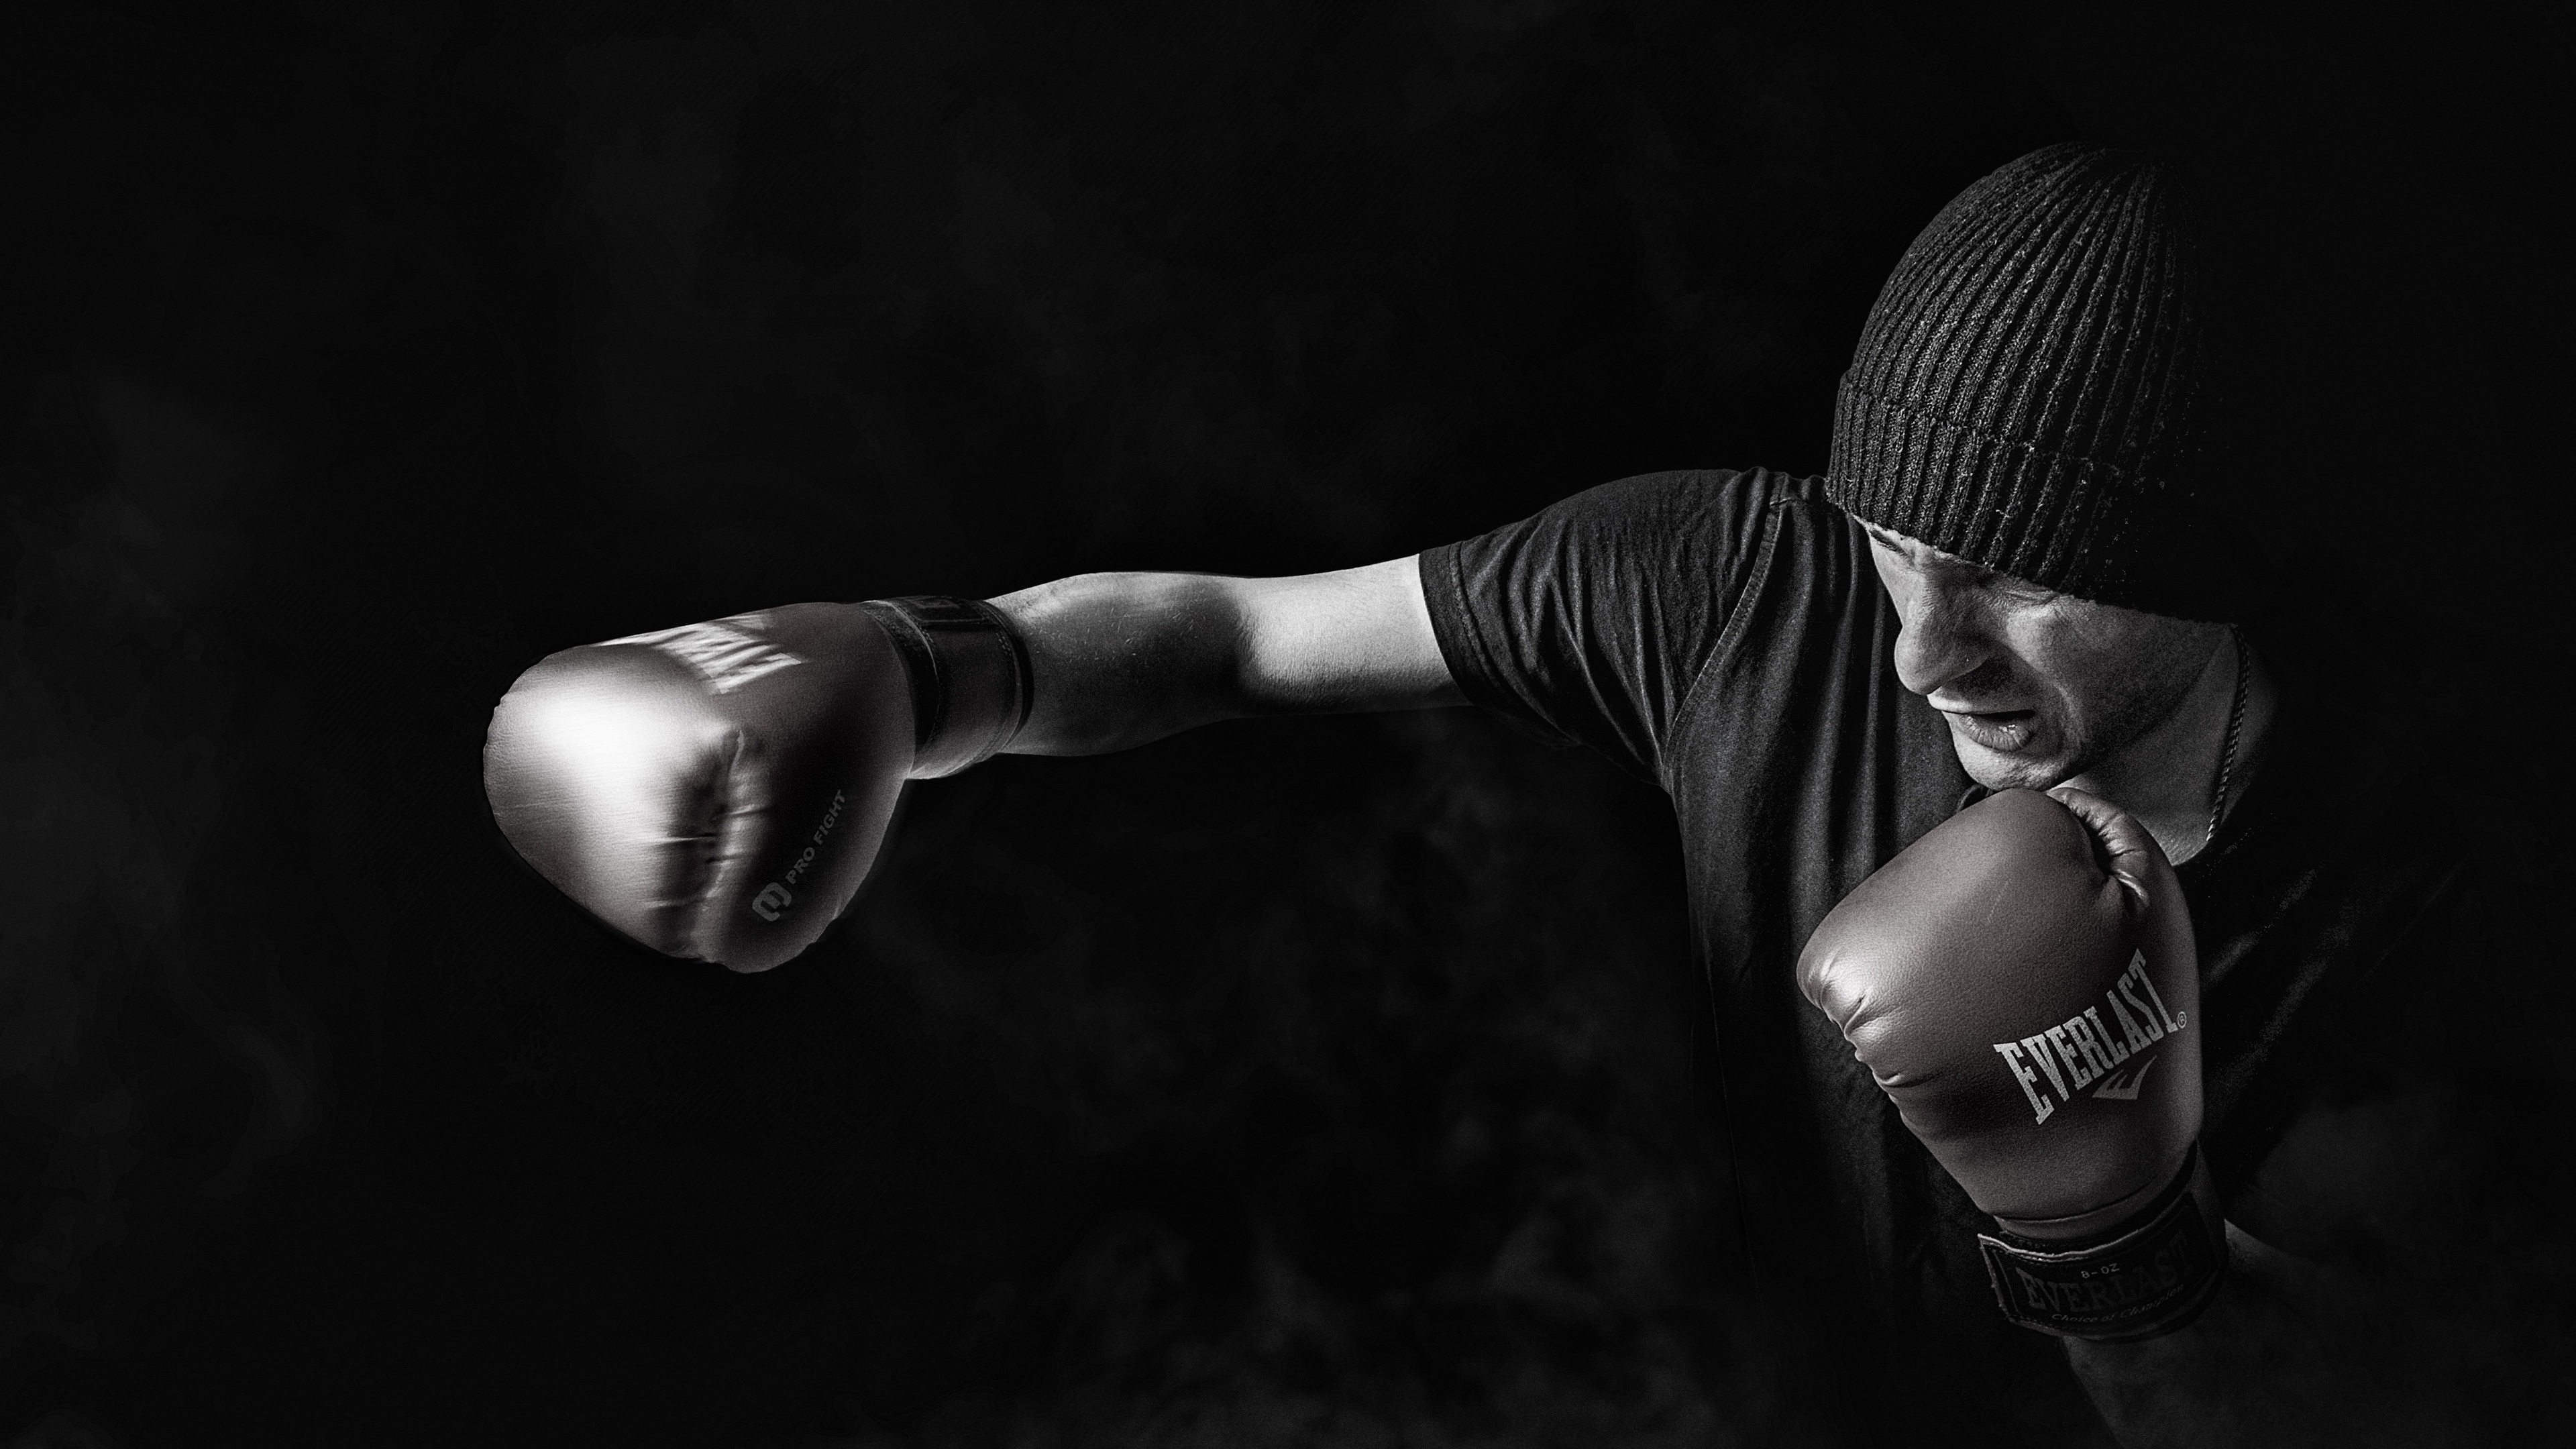 kickboxing 4k 1538786810 - Kickboxing 4k - sports wallpapers, monochrome wallpapers, hd-wallpapers, boxing wallpapers, black and white wallpapers, 5k wallpapers, 4k-wallpapers